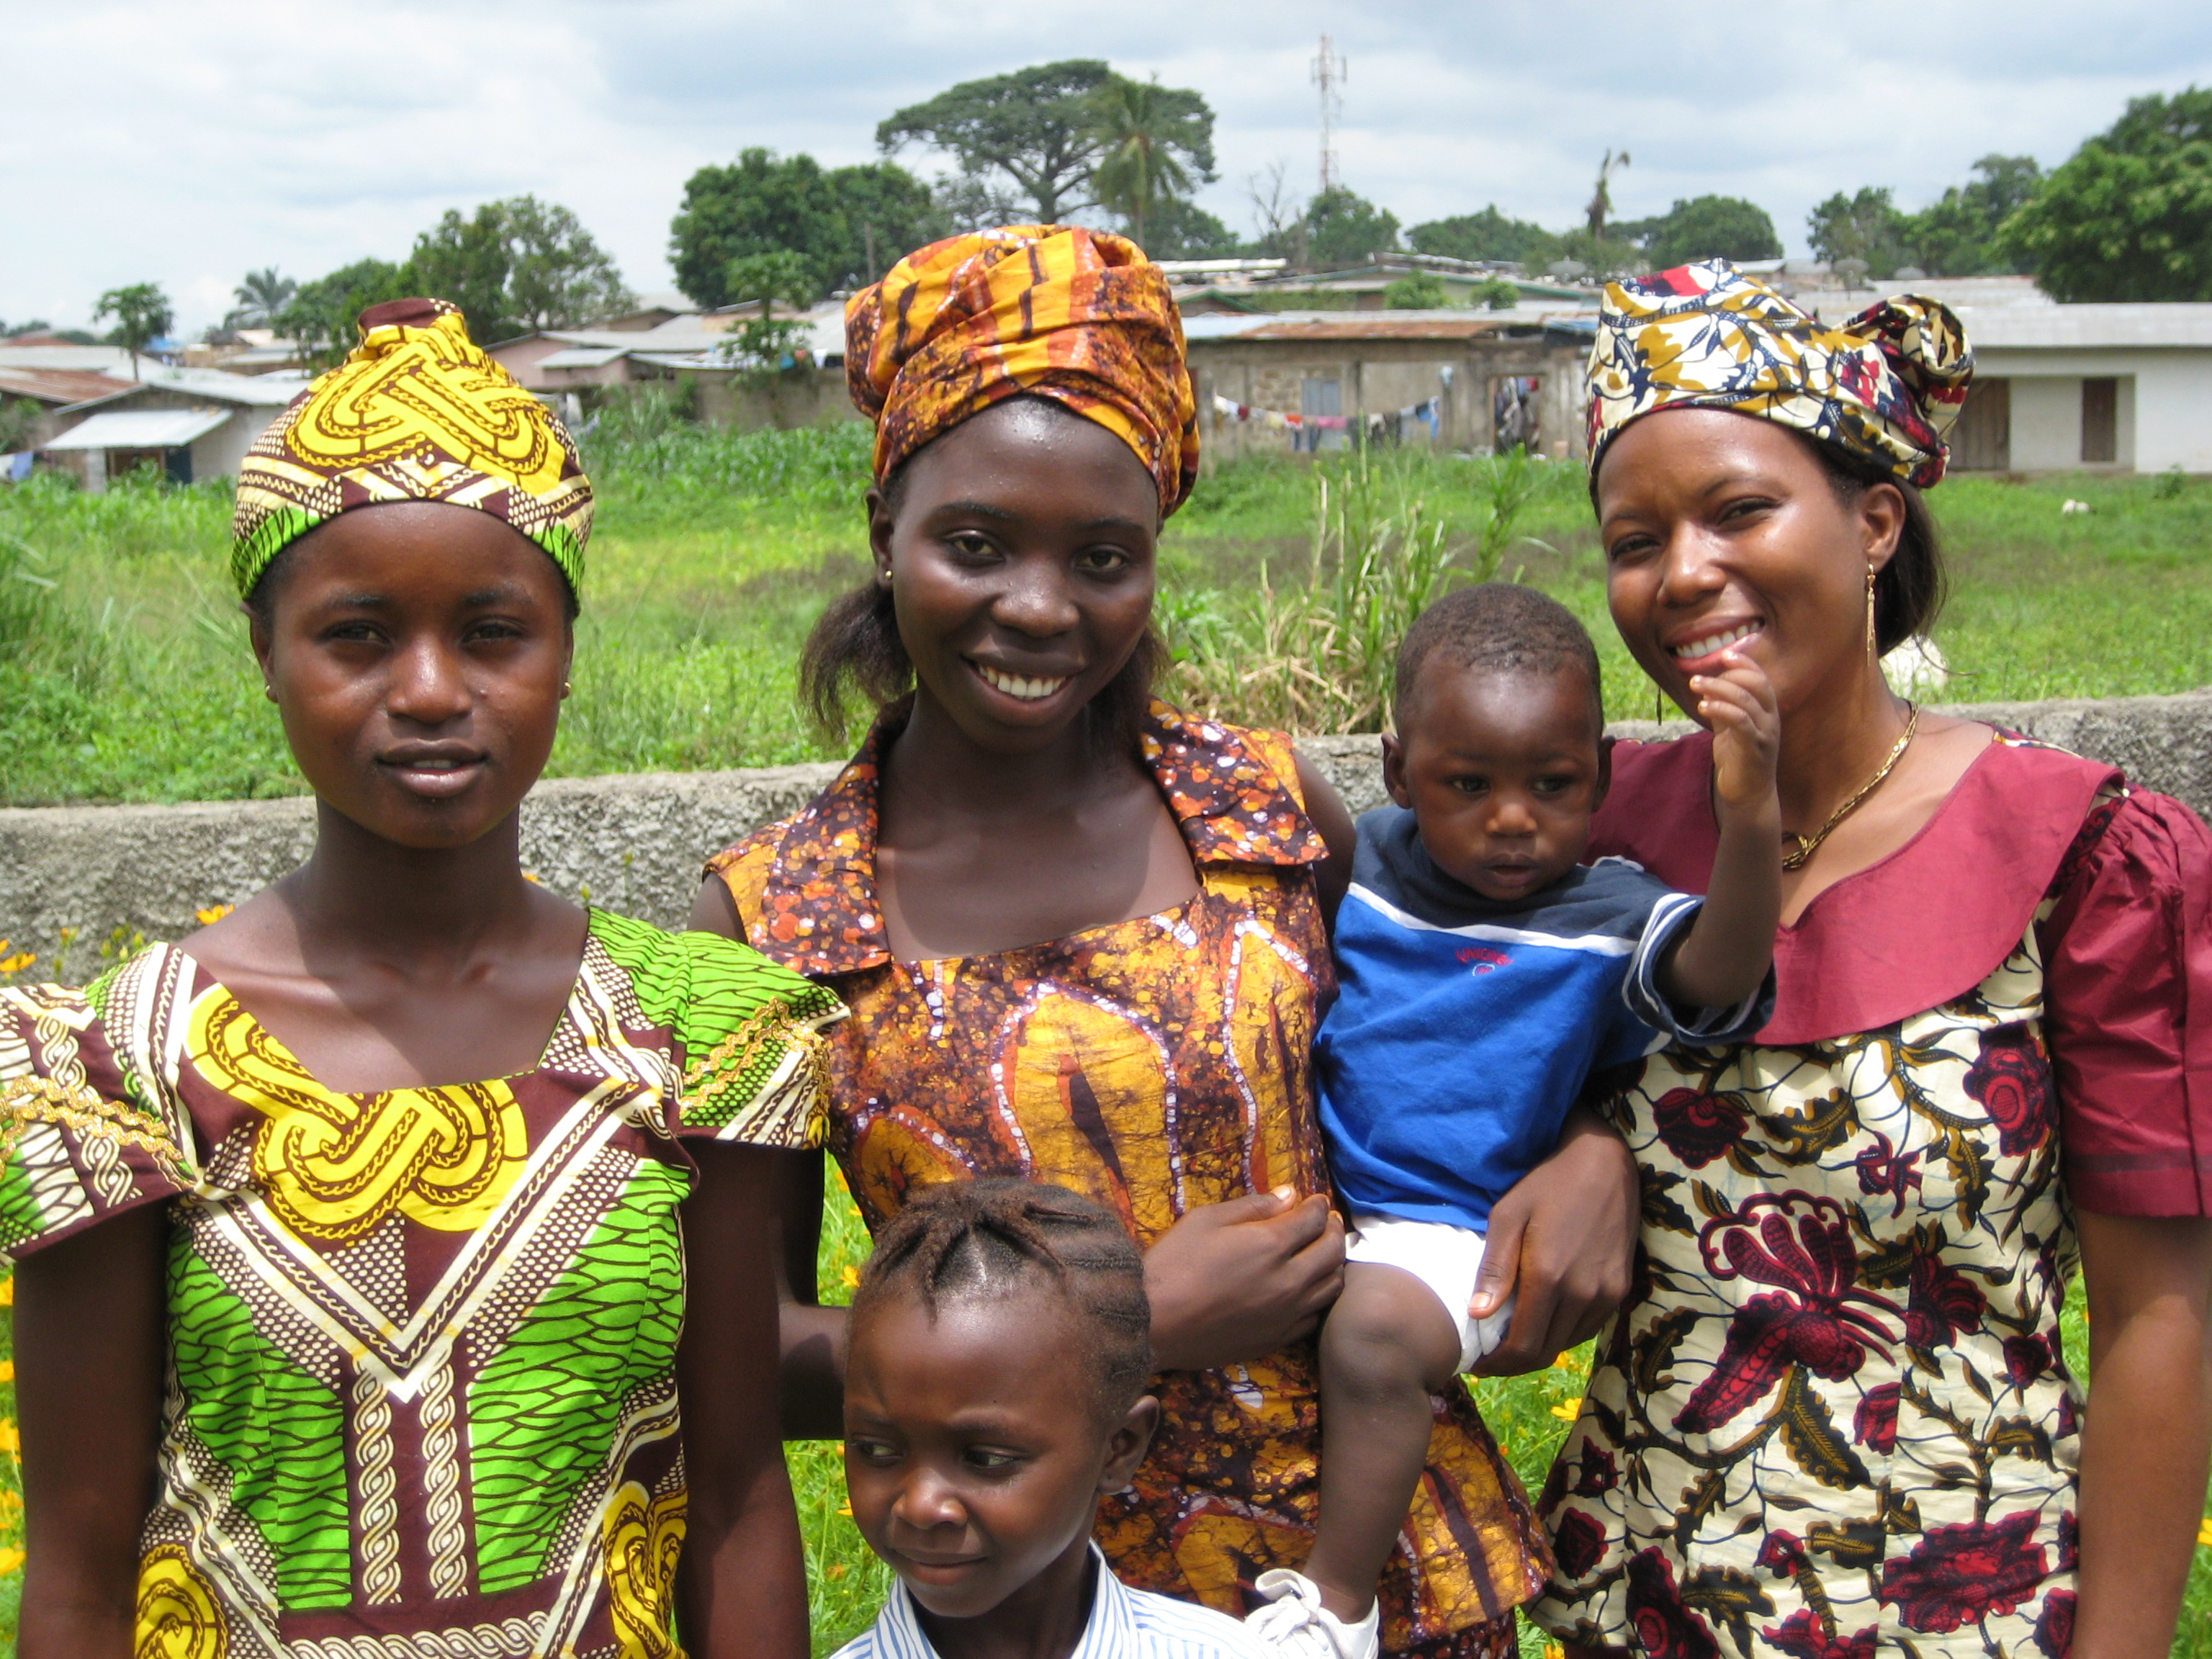 Krio women who want experienced translation provided for them